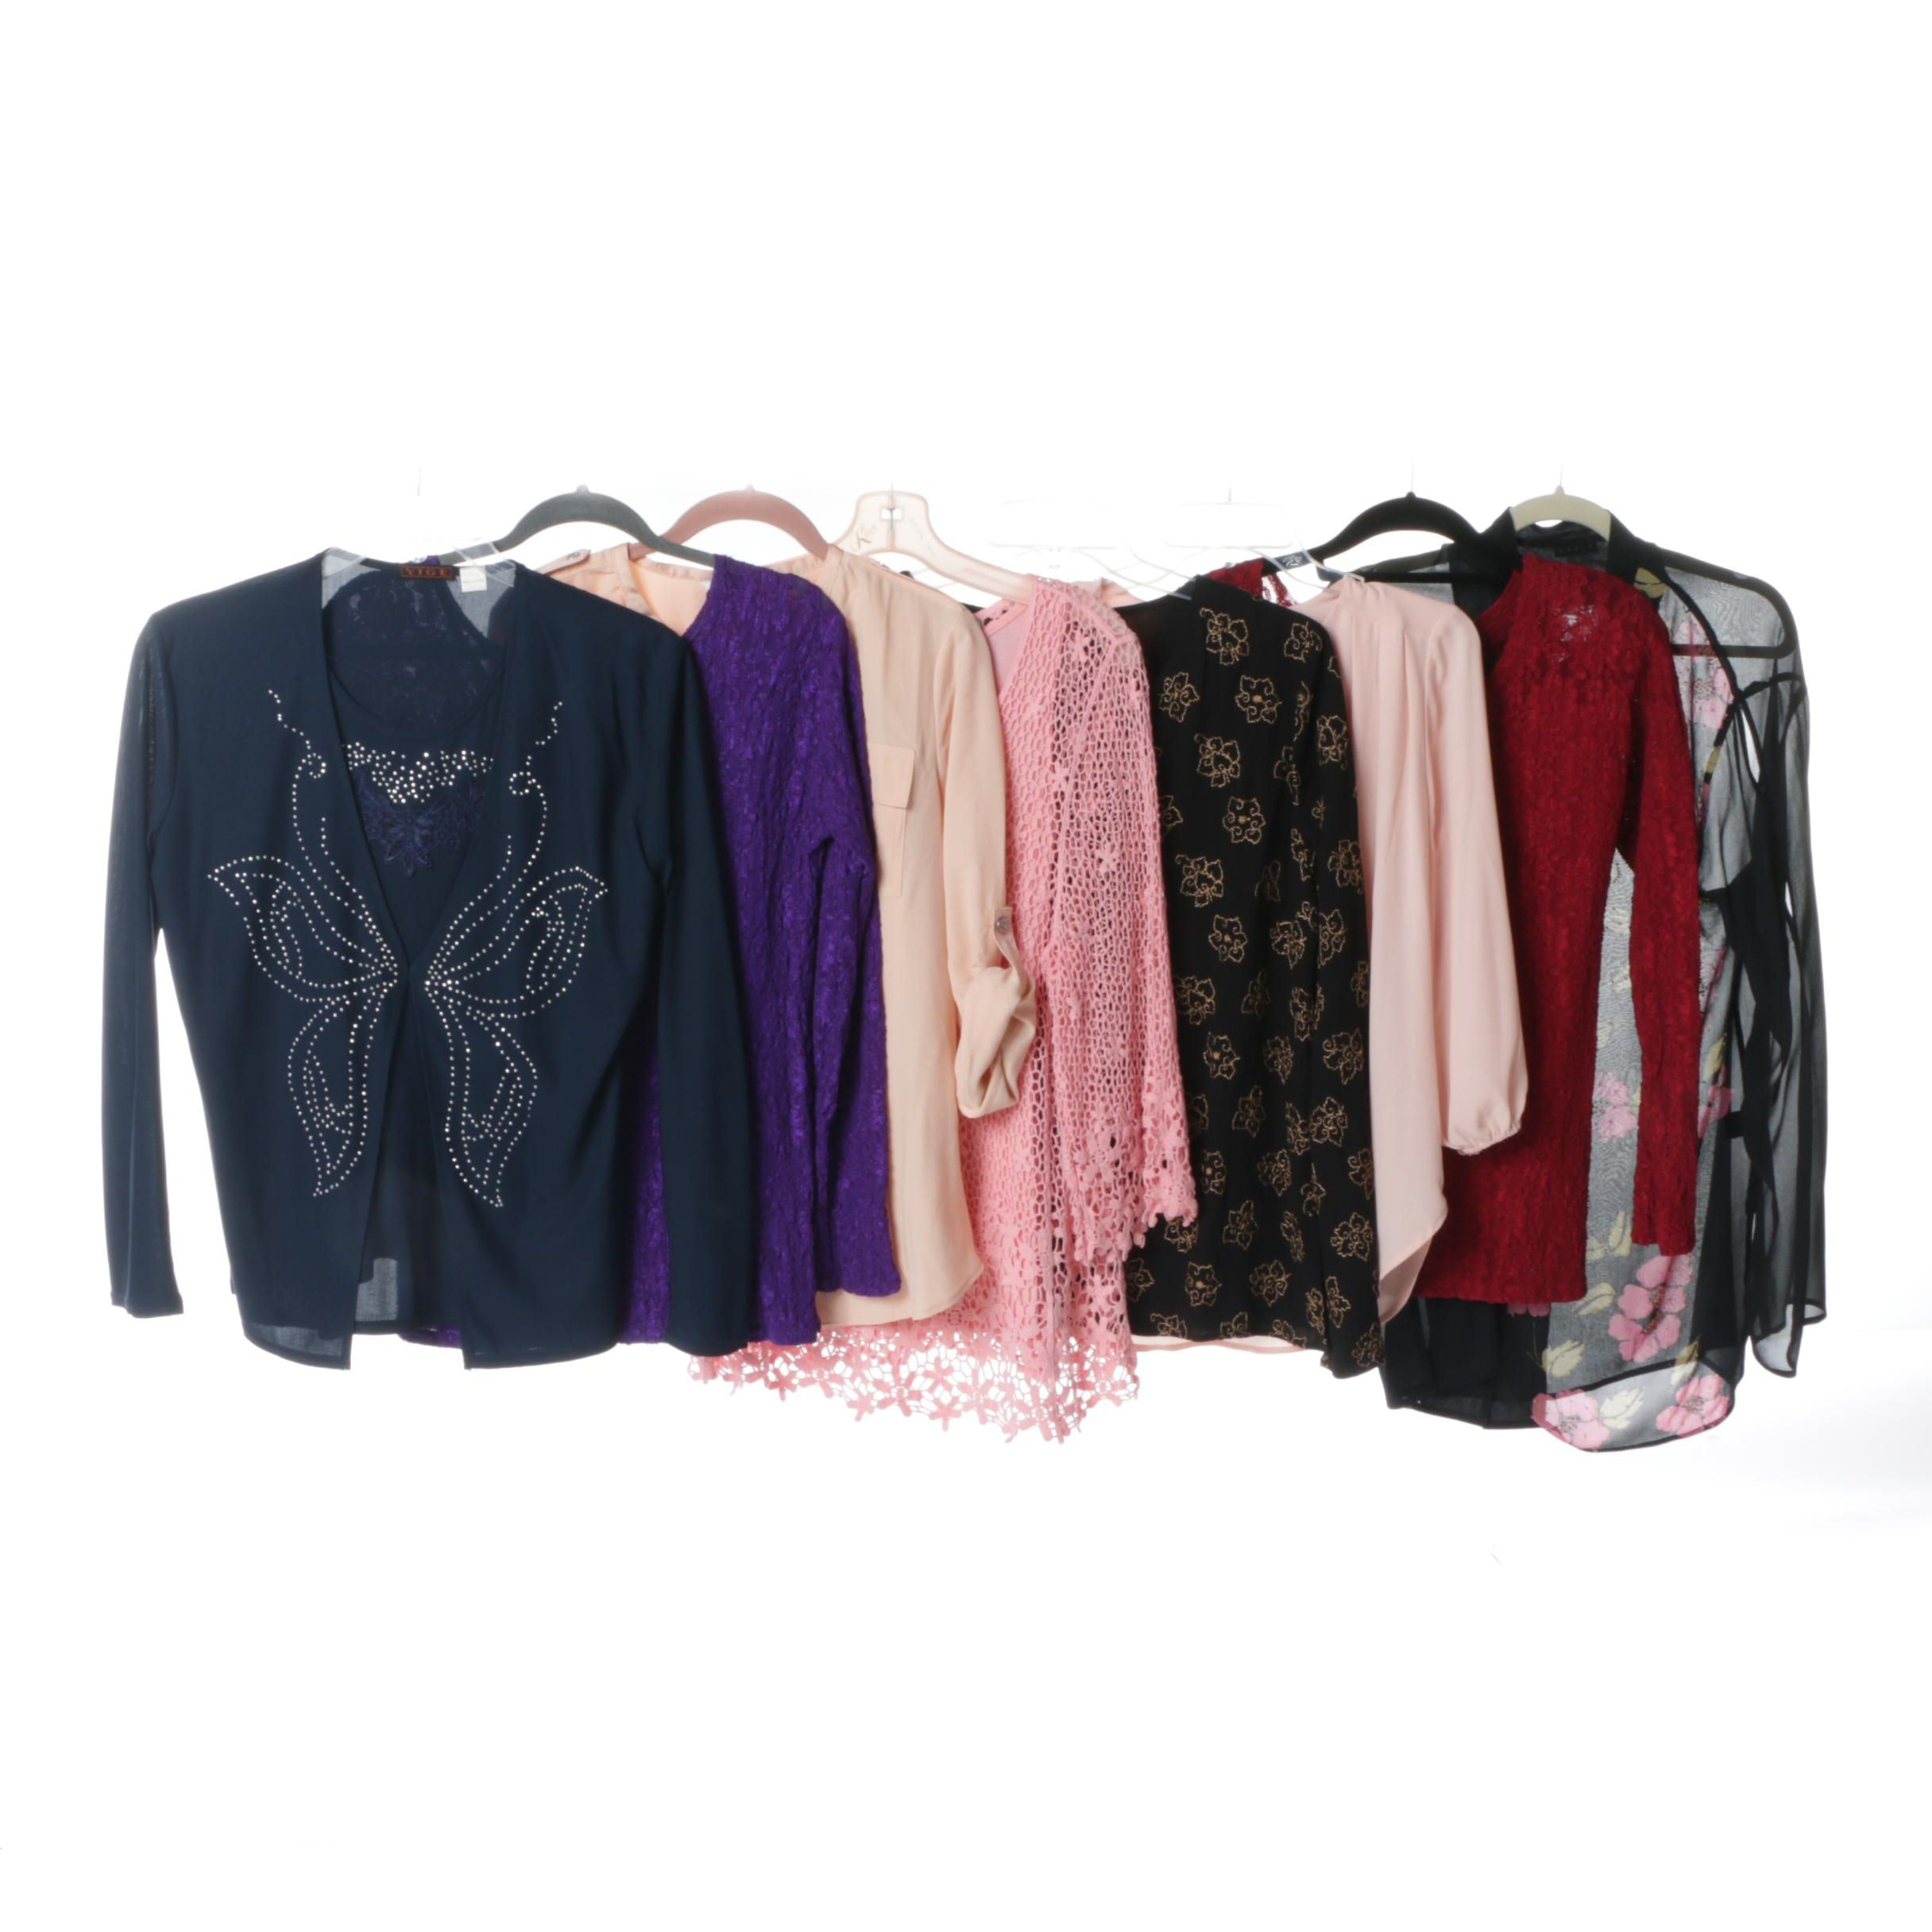 Women's Contemporary Top Separates